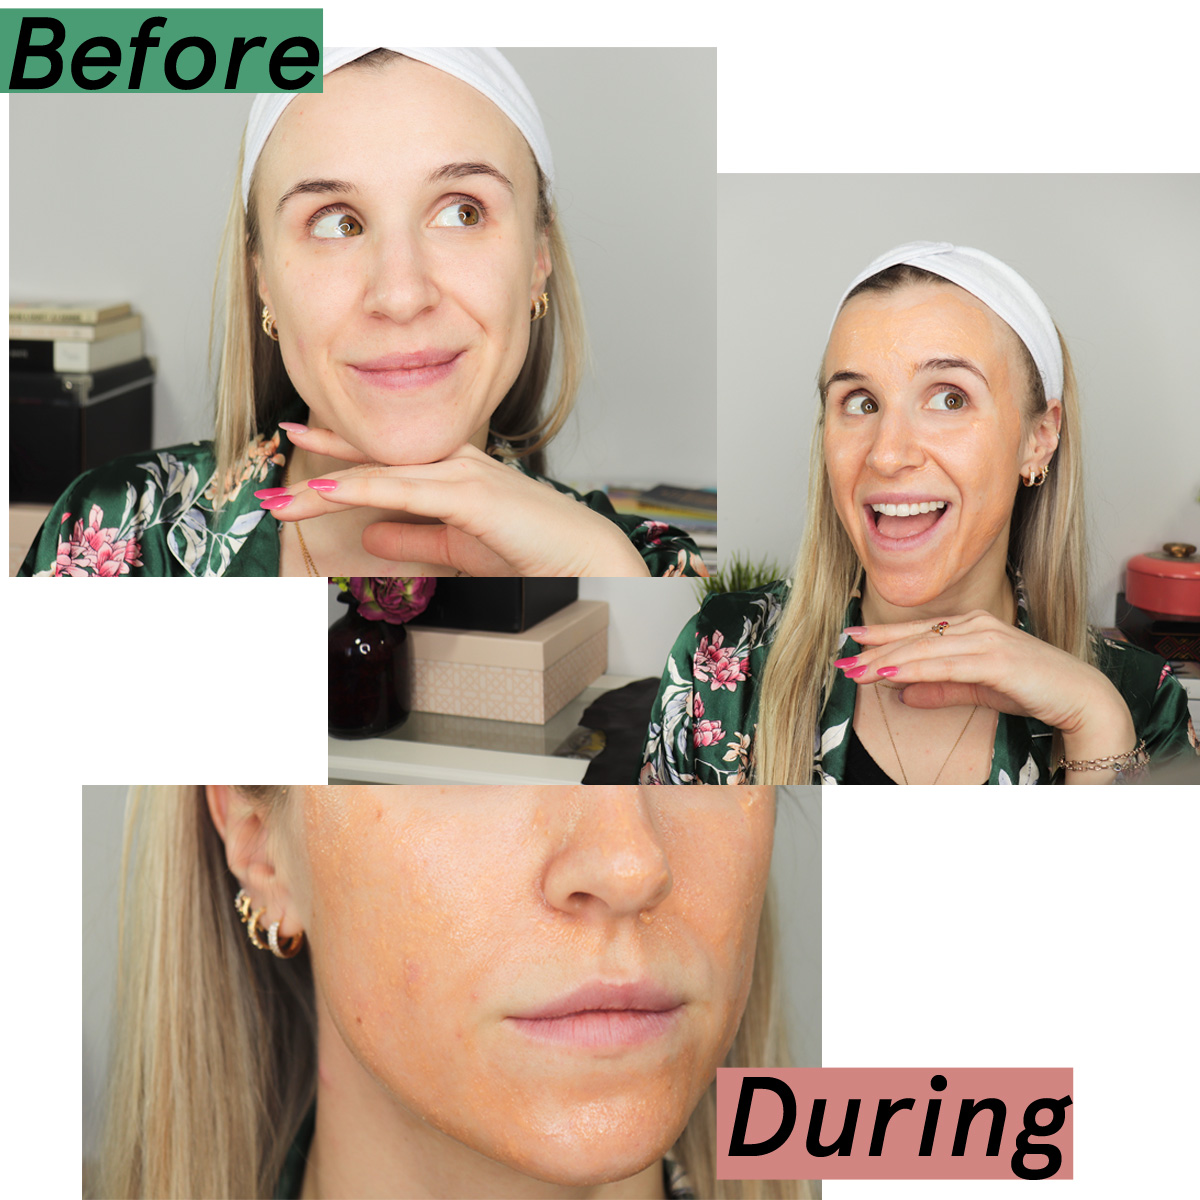 Pixi Mask Before and During